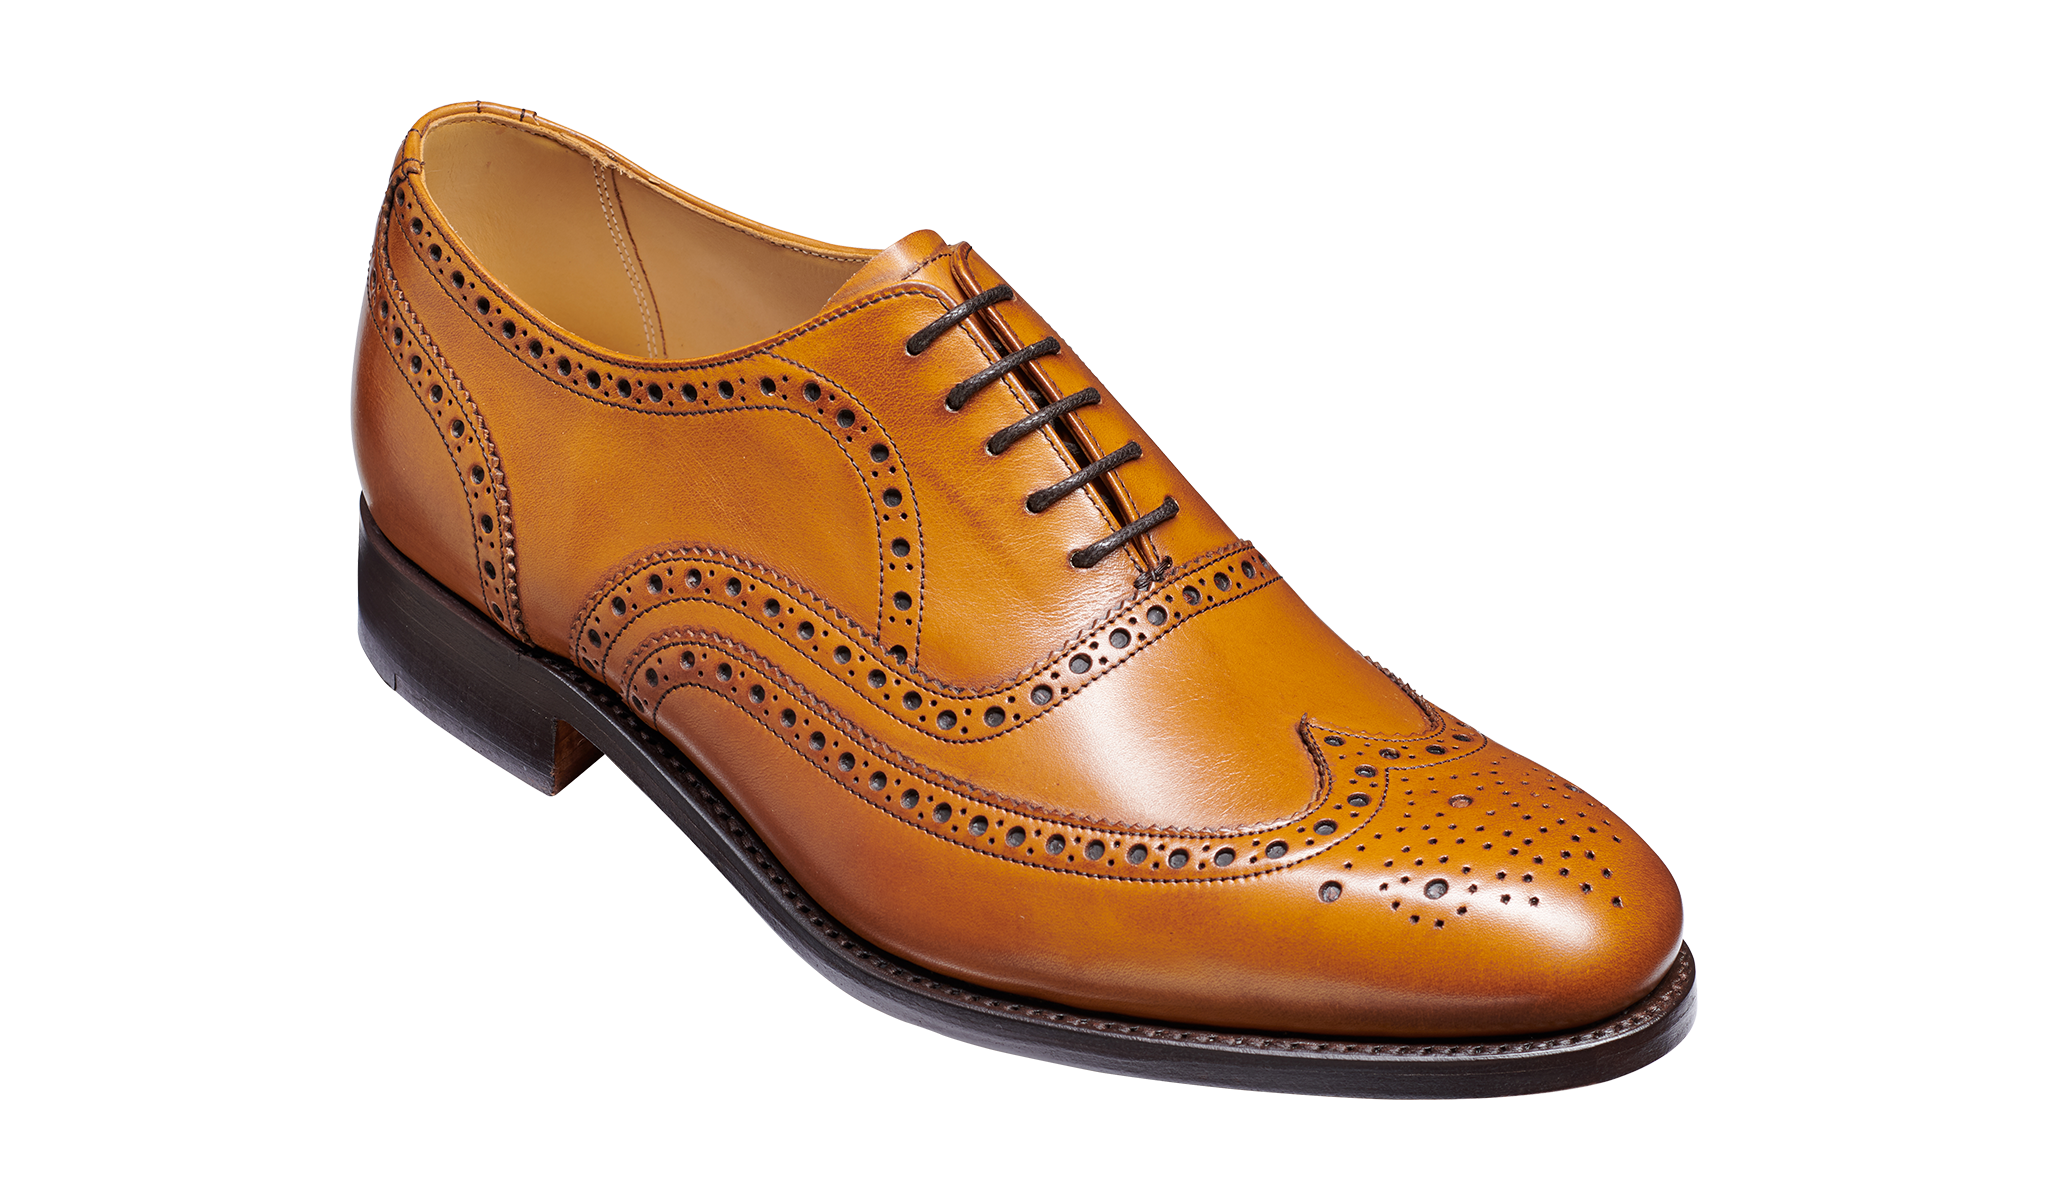 Malton - Malton is cedar calf oxford shoe by Barker Shoes famed for its fitting and comfort.